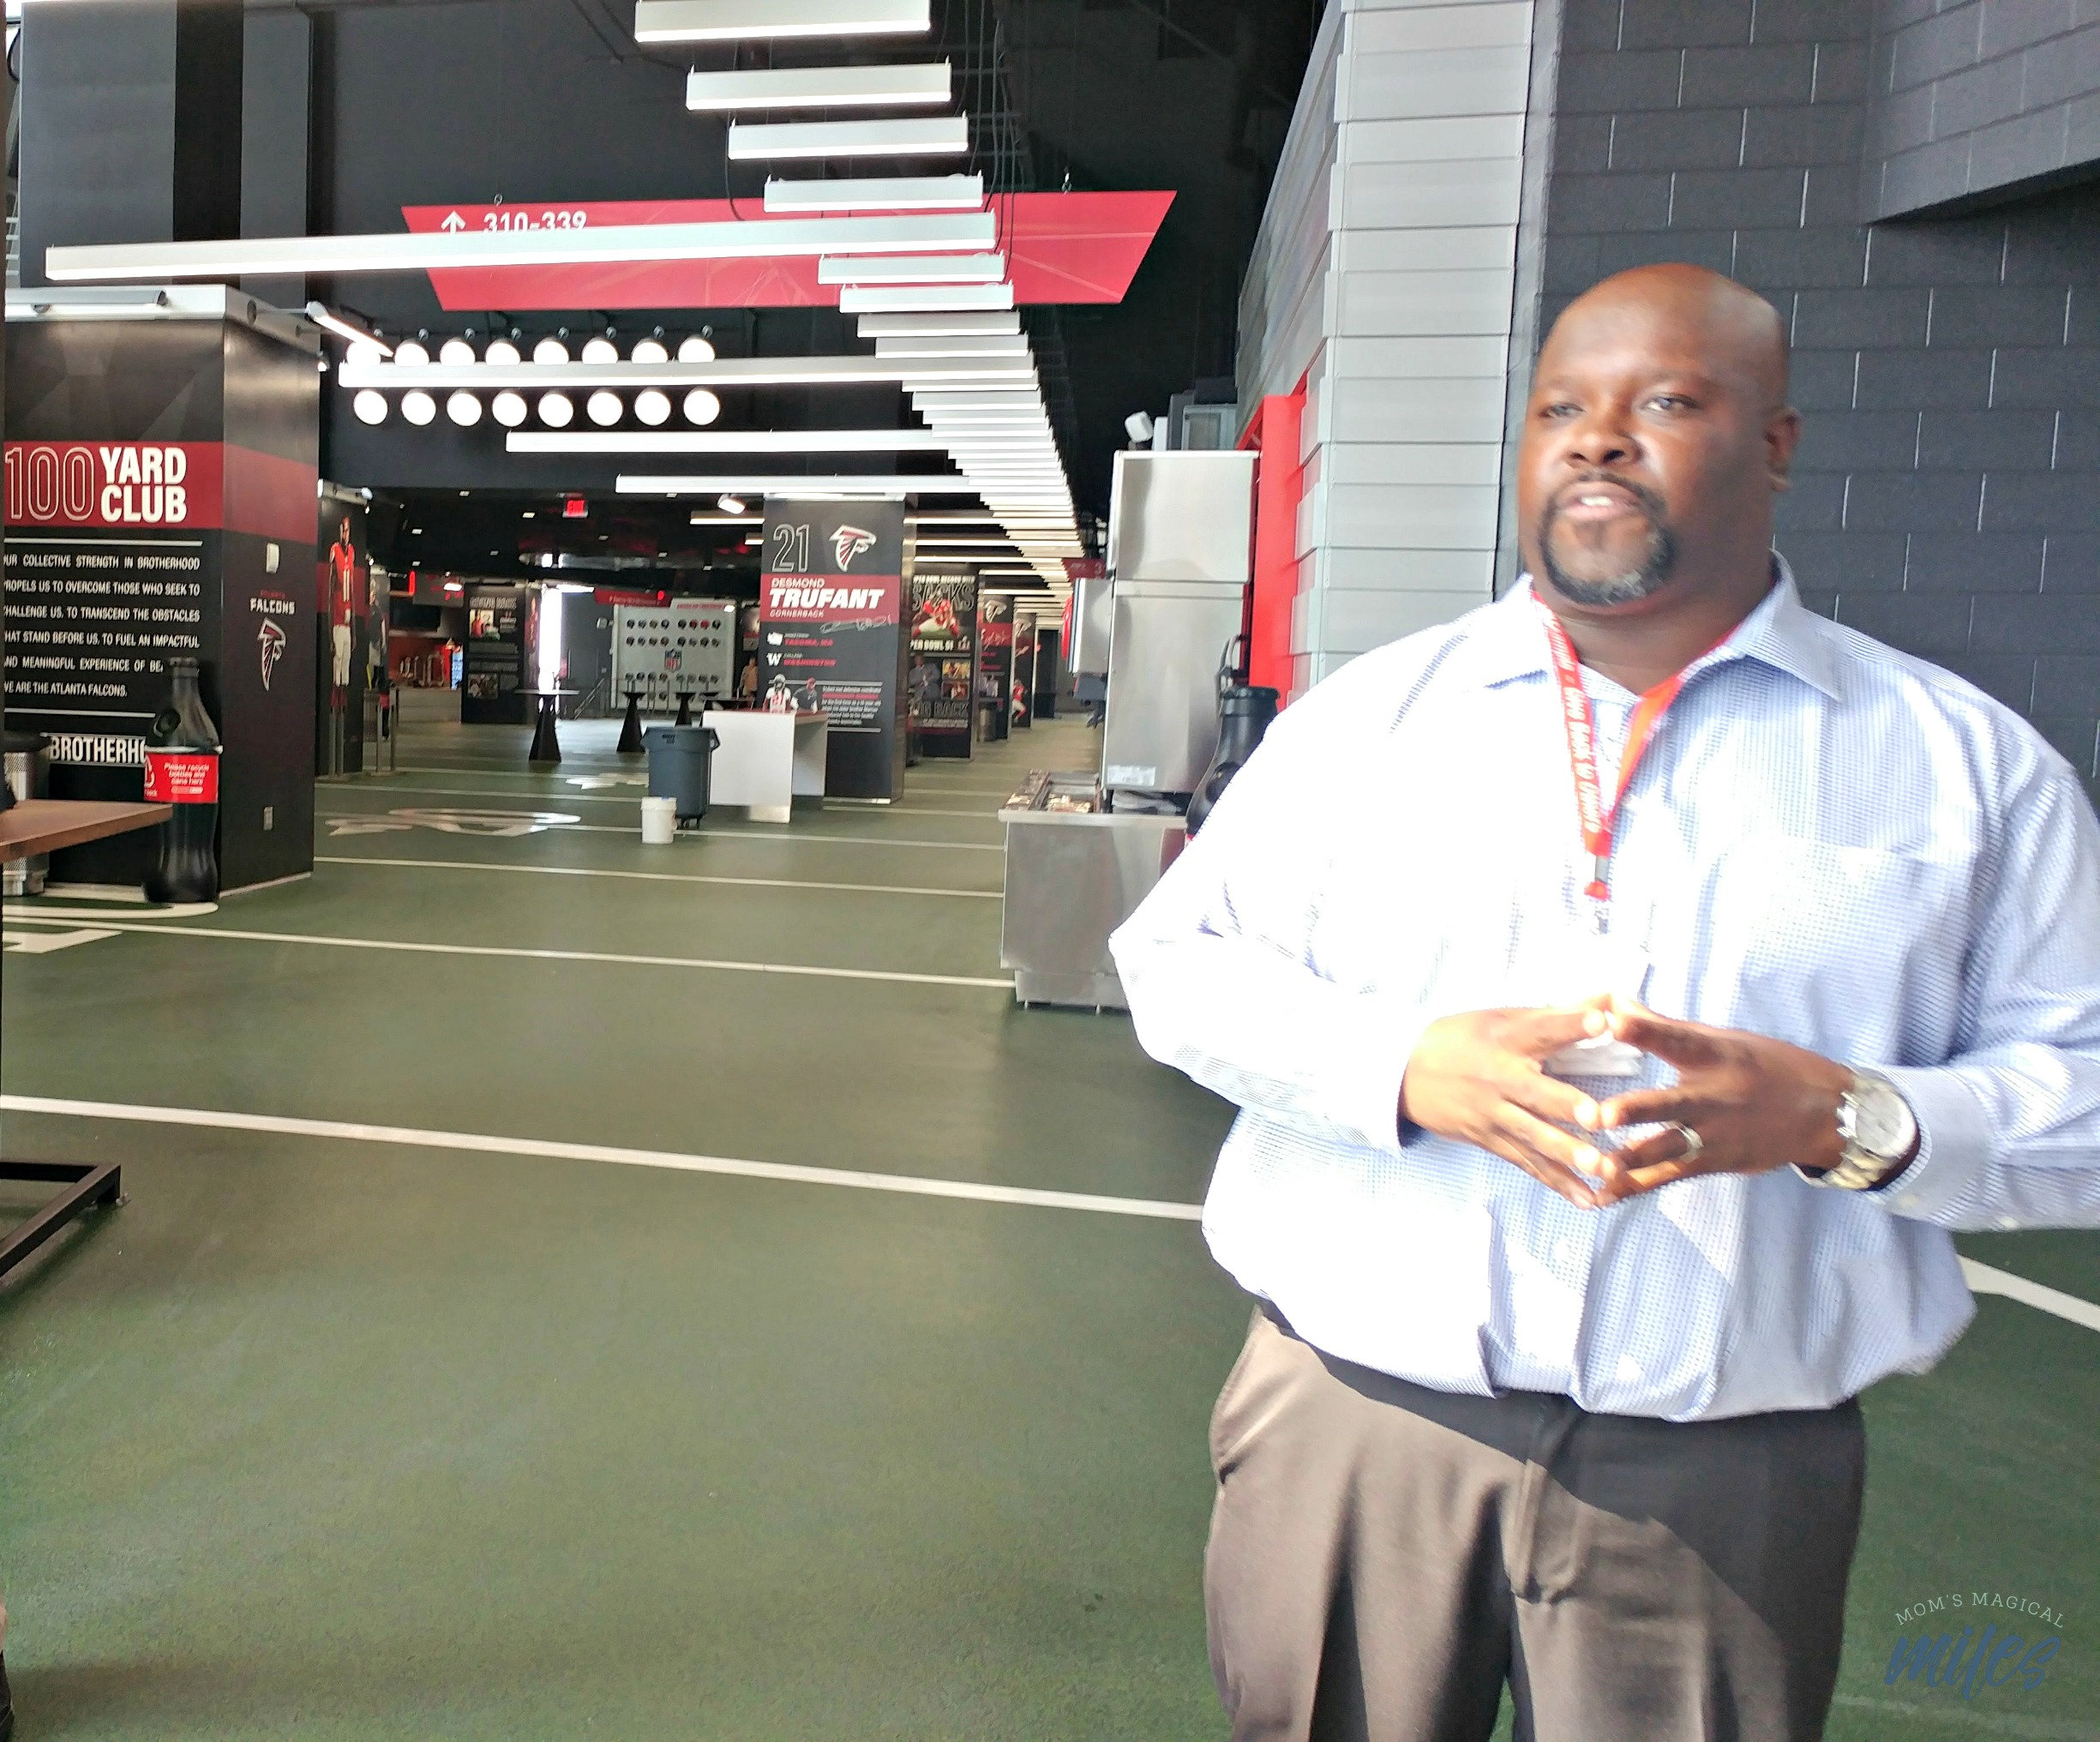 The 100 Yard Club is a fun fan area in the new Mercedes-Benz Stadium.